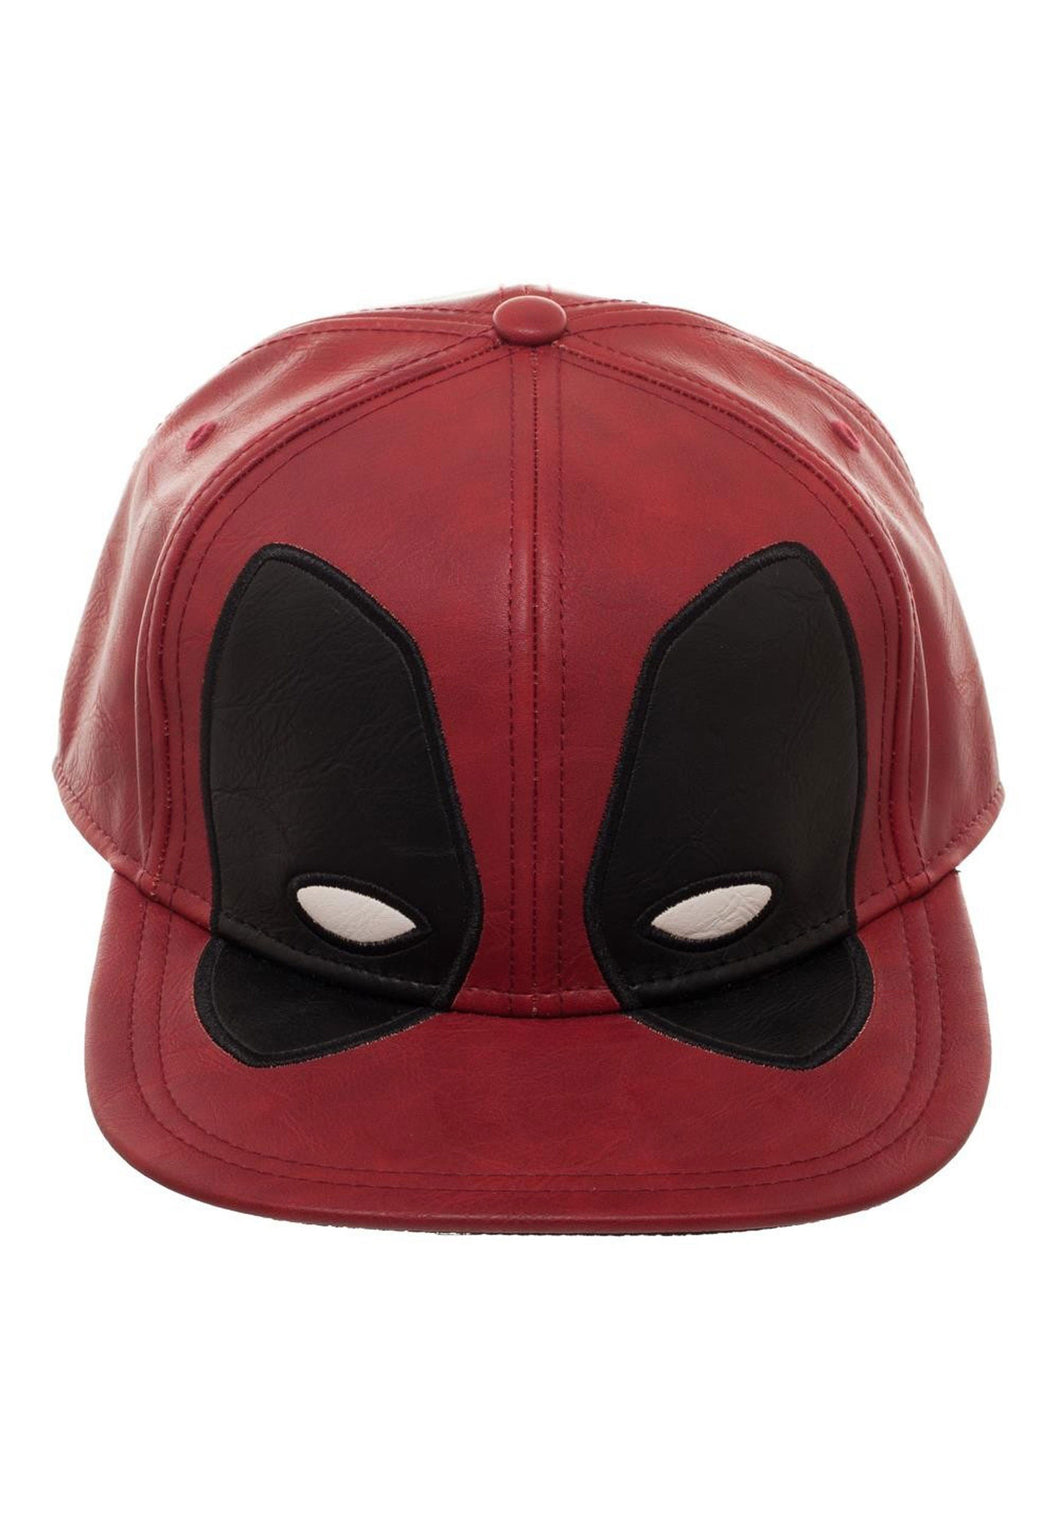 Deadpool Big Face Distressed Deluxe Snapback Hat - Mean-Tees.com